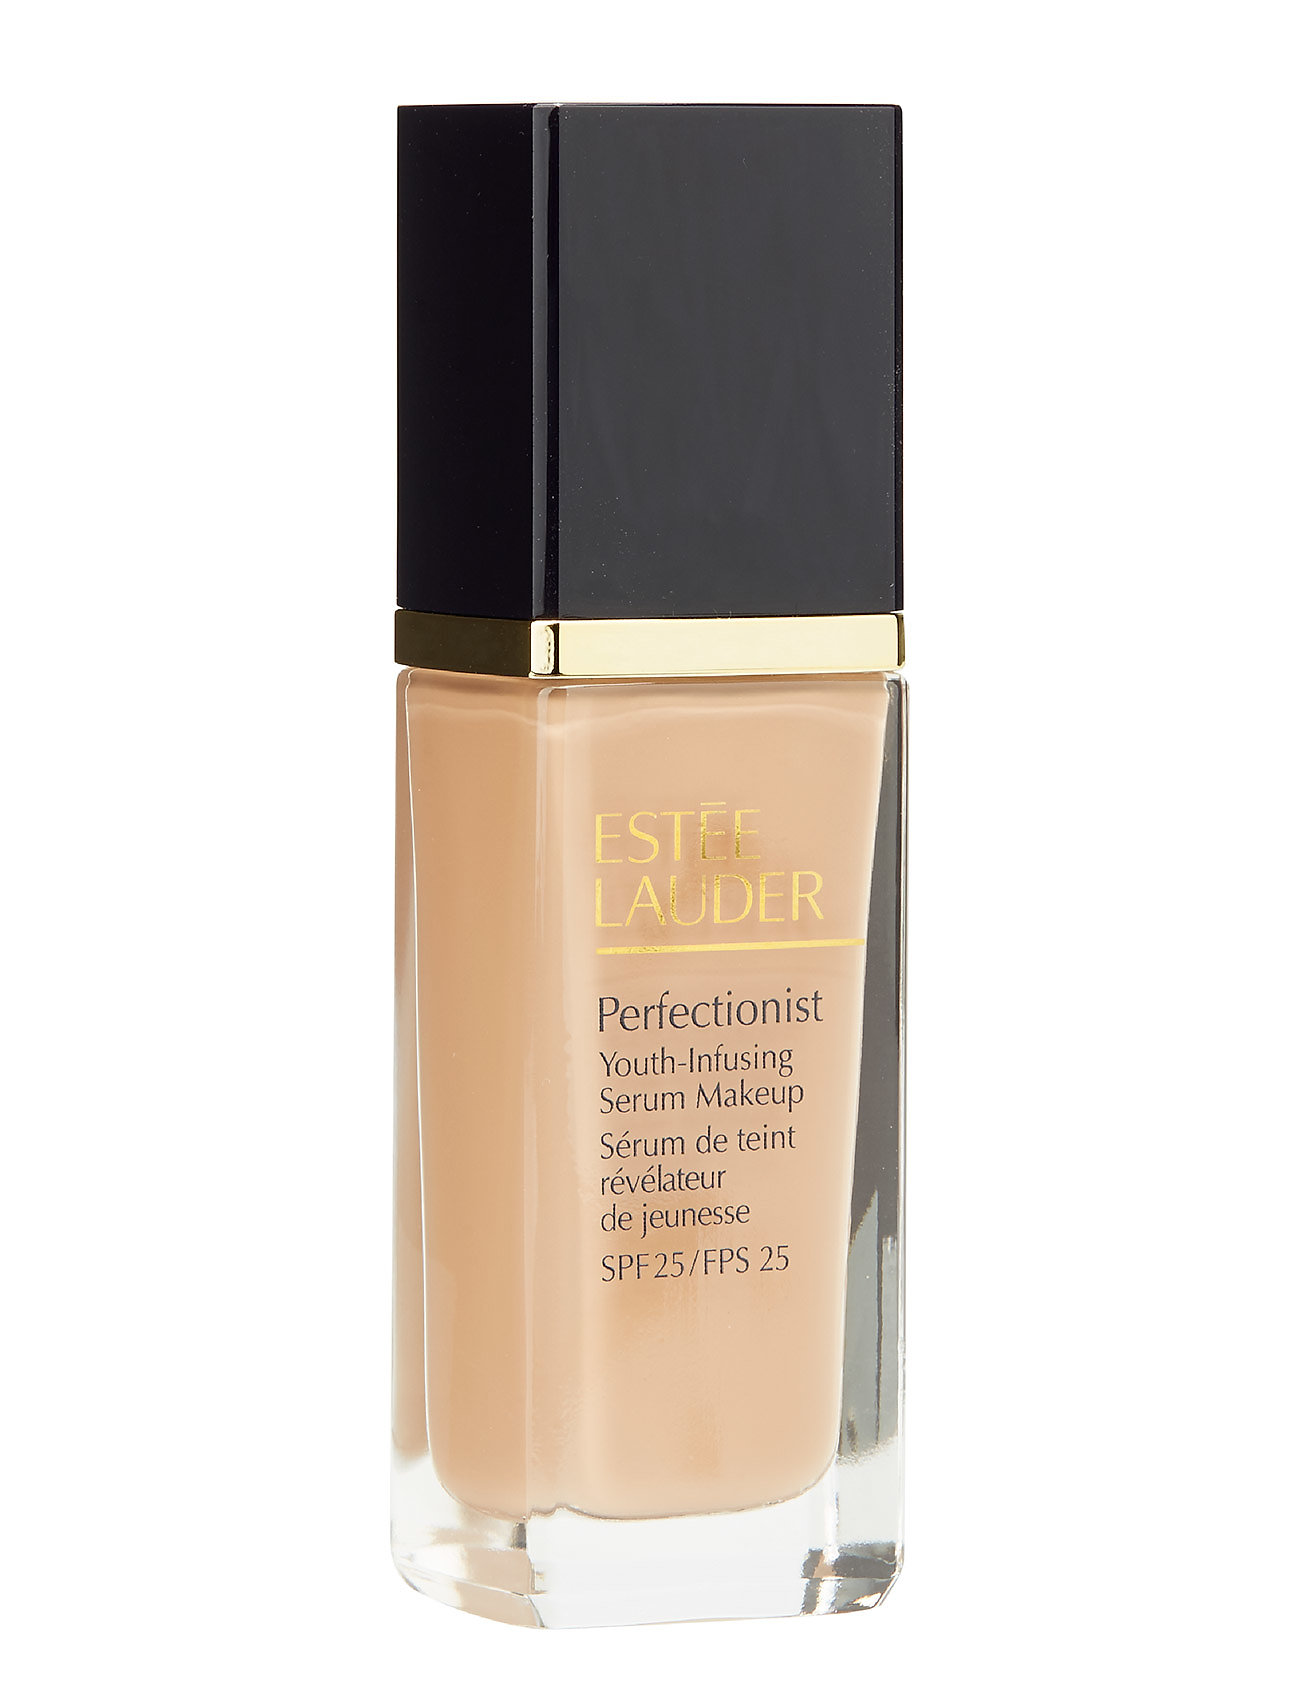 Image of Perfectionist Youth Infusing Makeup Foundation Makeup Estée Lauder (3276911911)